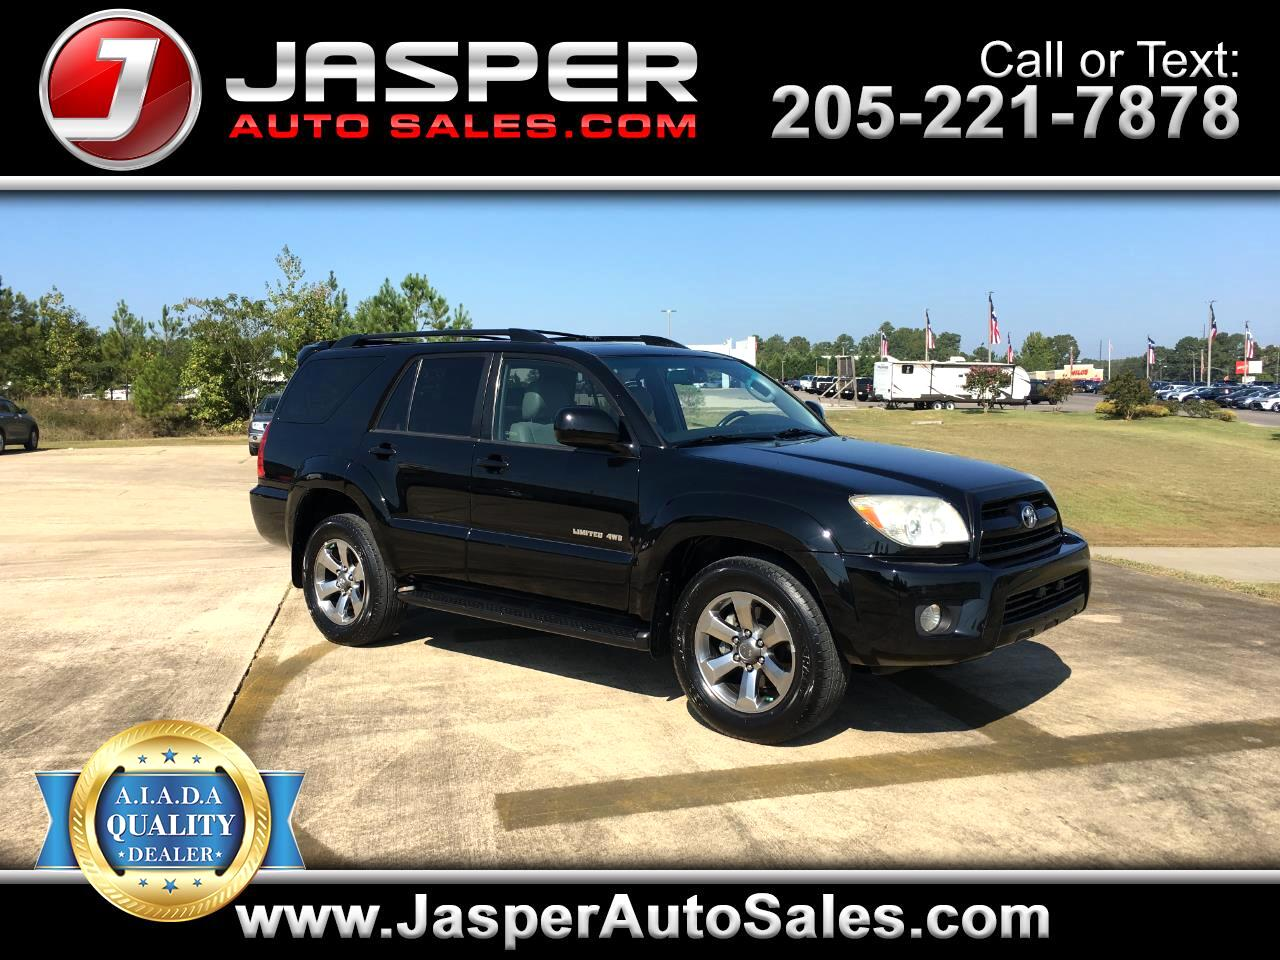 2007 Toyota 4Runner 4dr Limited V6 Auto 4WD (Natl)